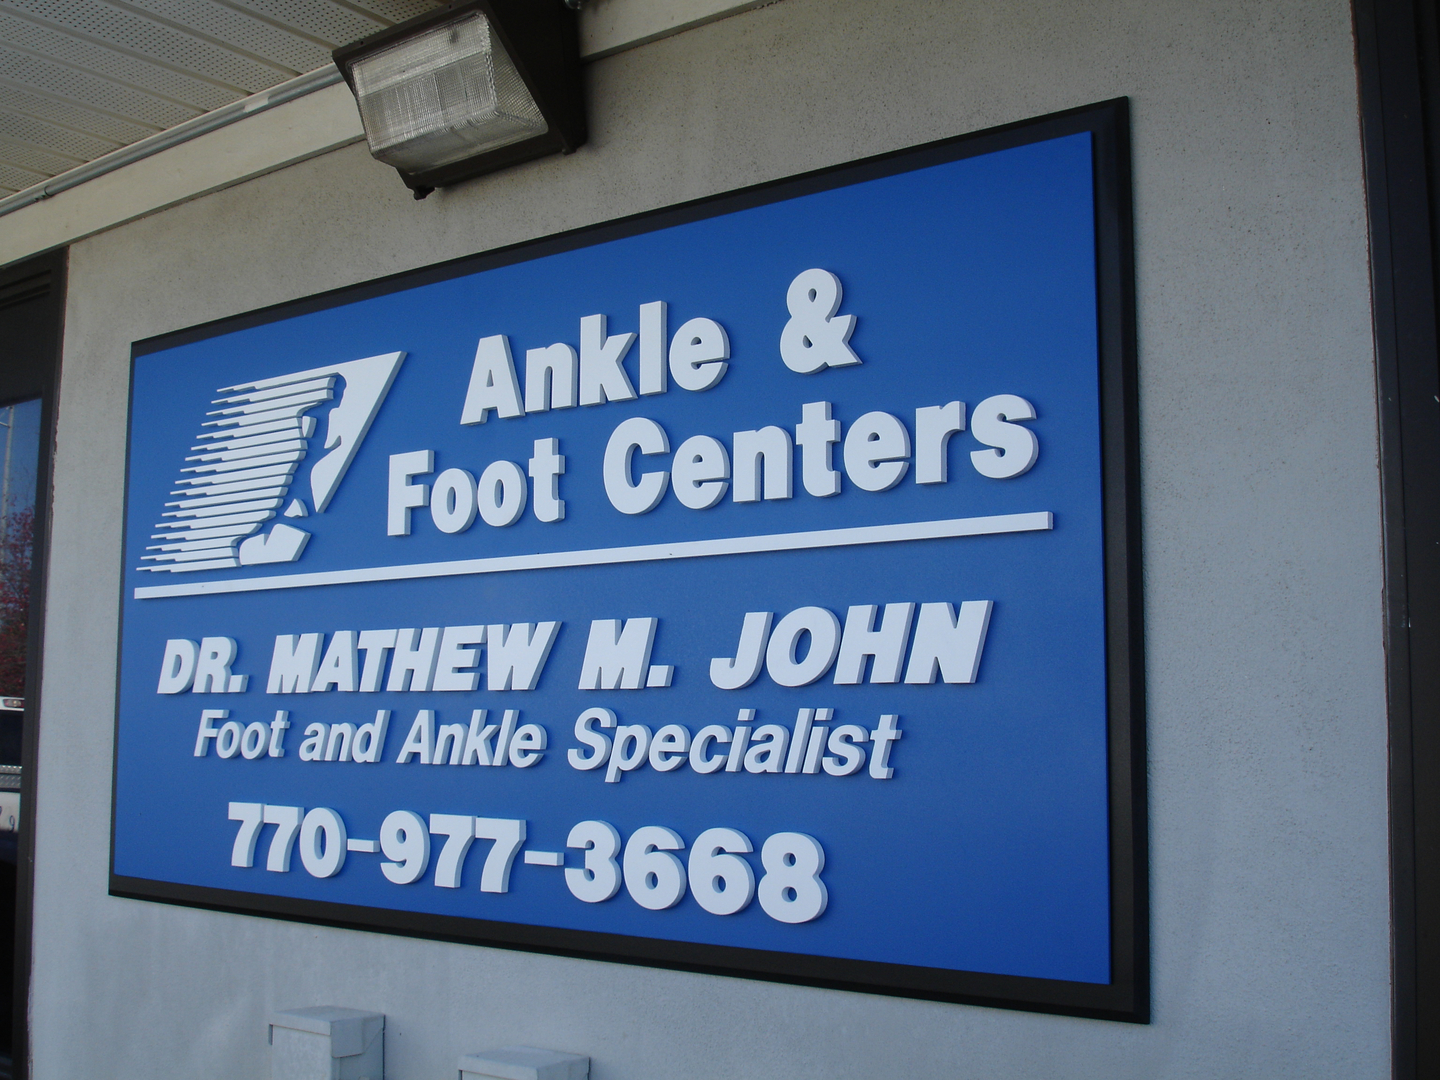 ankle & foot centers.jpg